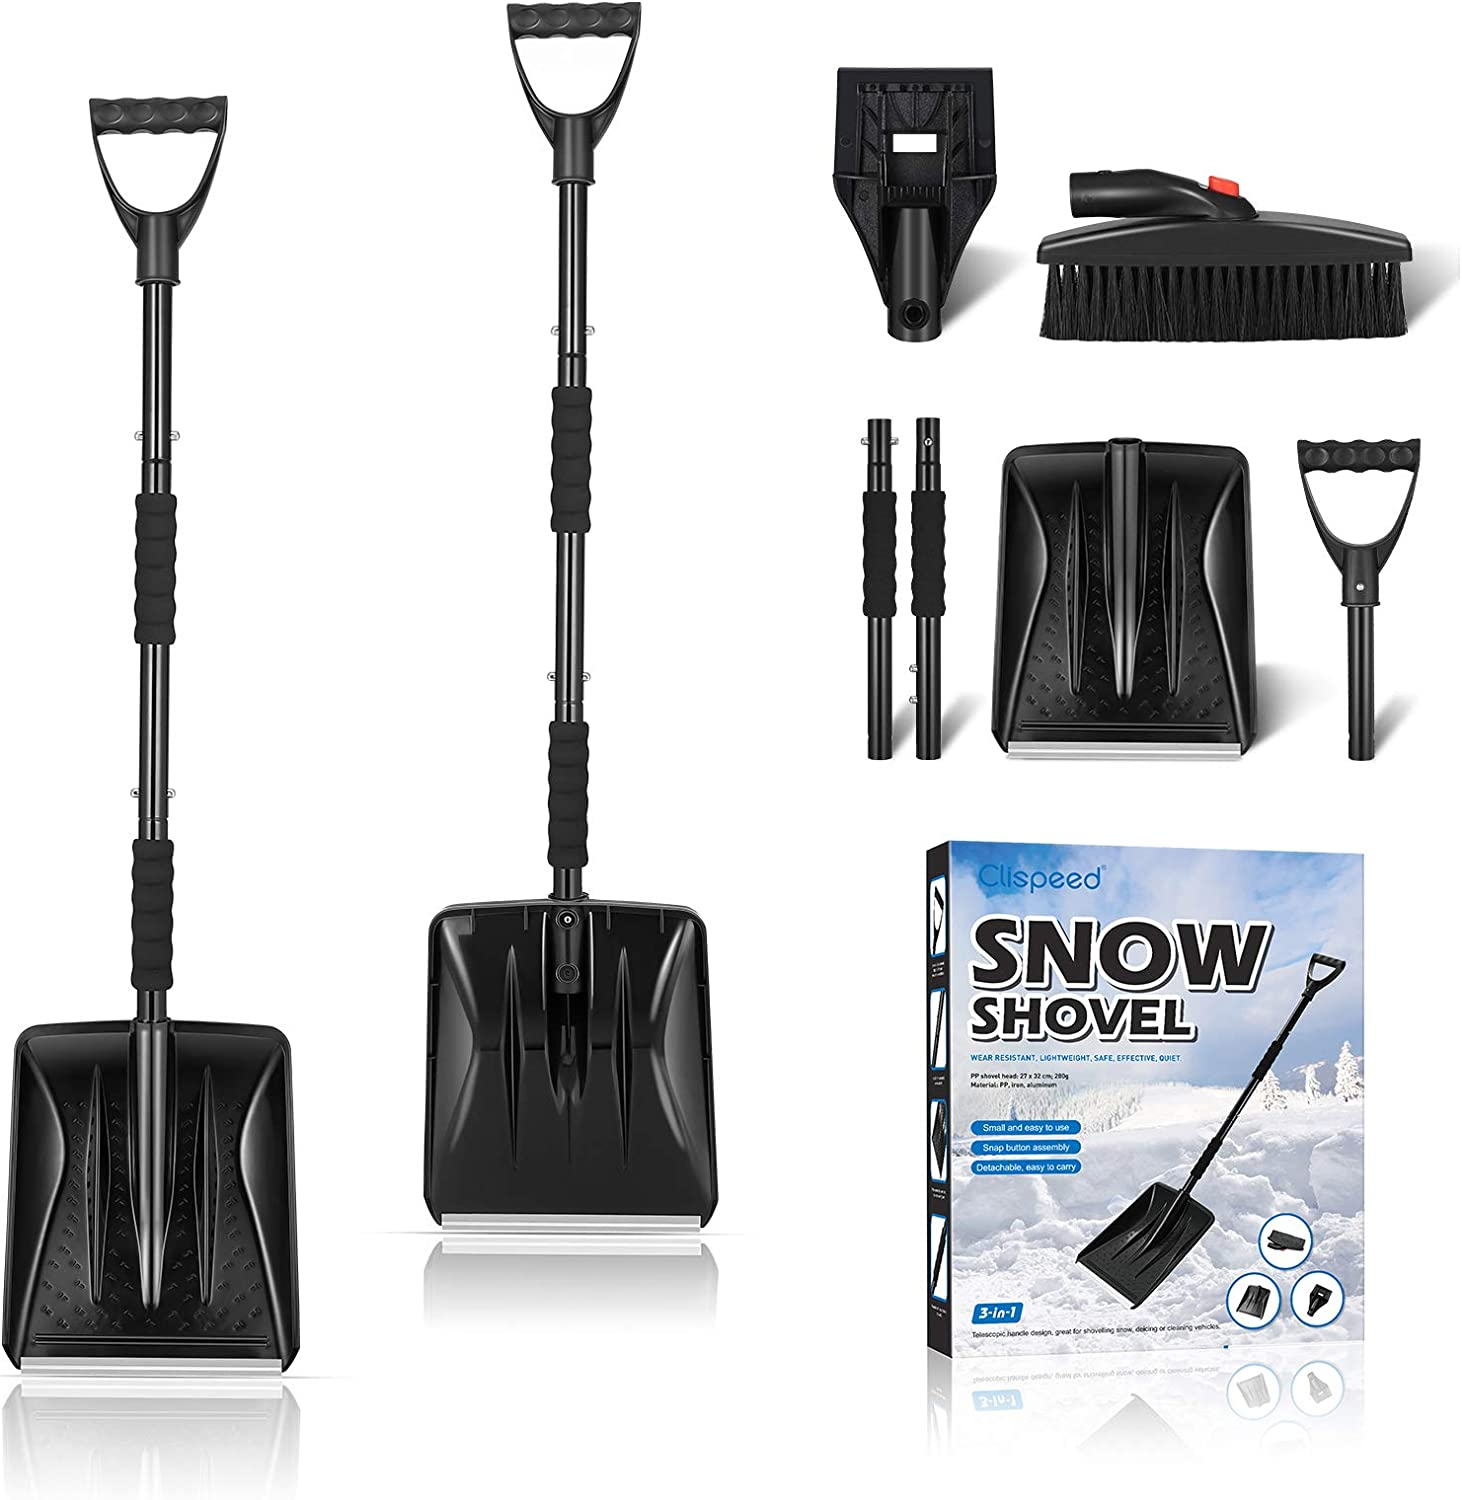 Backyard with Carrying Bag Camping Portable Snow Remover for Truck Collapsible Snow Brush with Ice Scraper and Snow Shovel 3-in-1 Snow Brush Kit Emergency Snow Removal Car Set